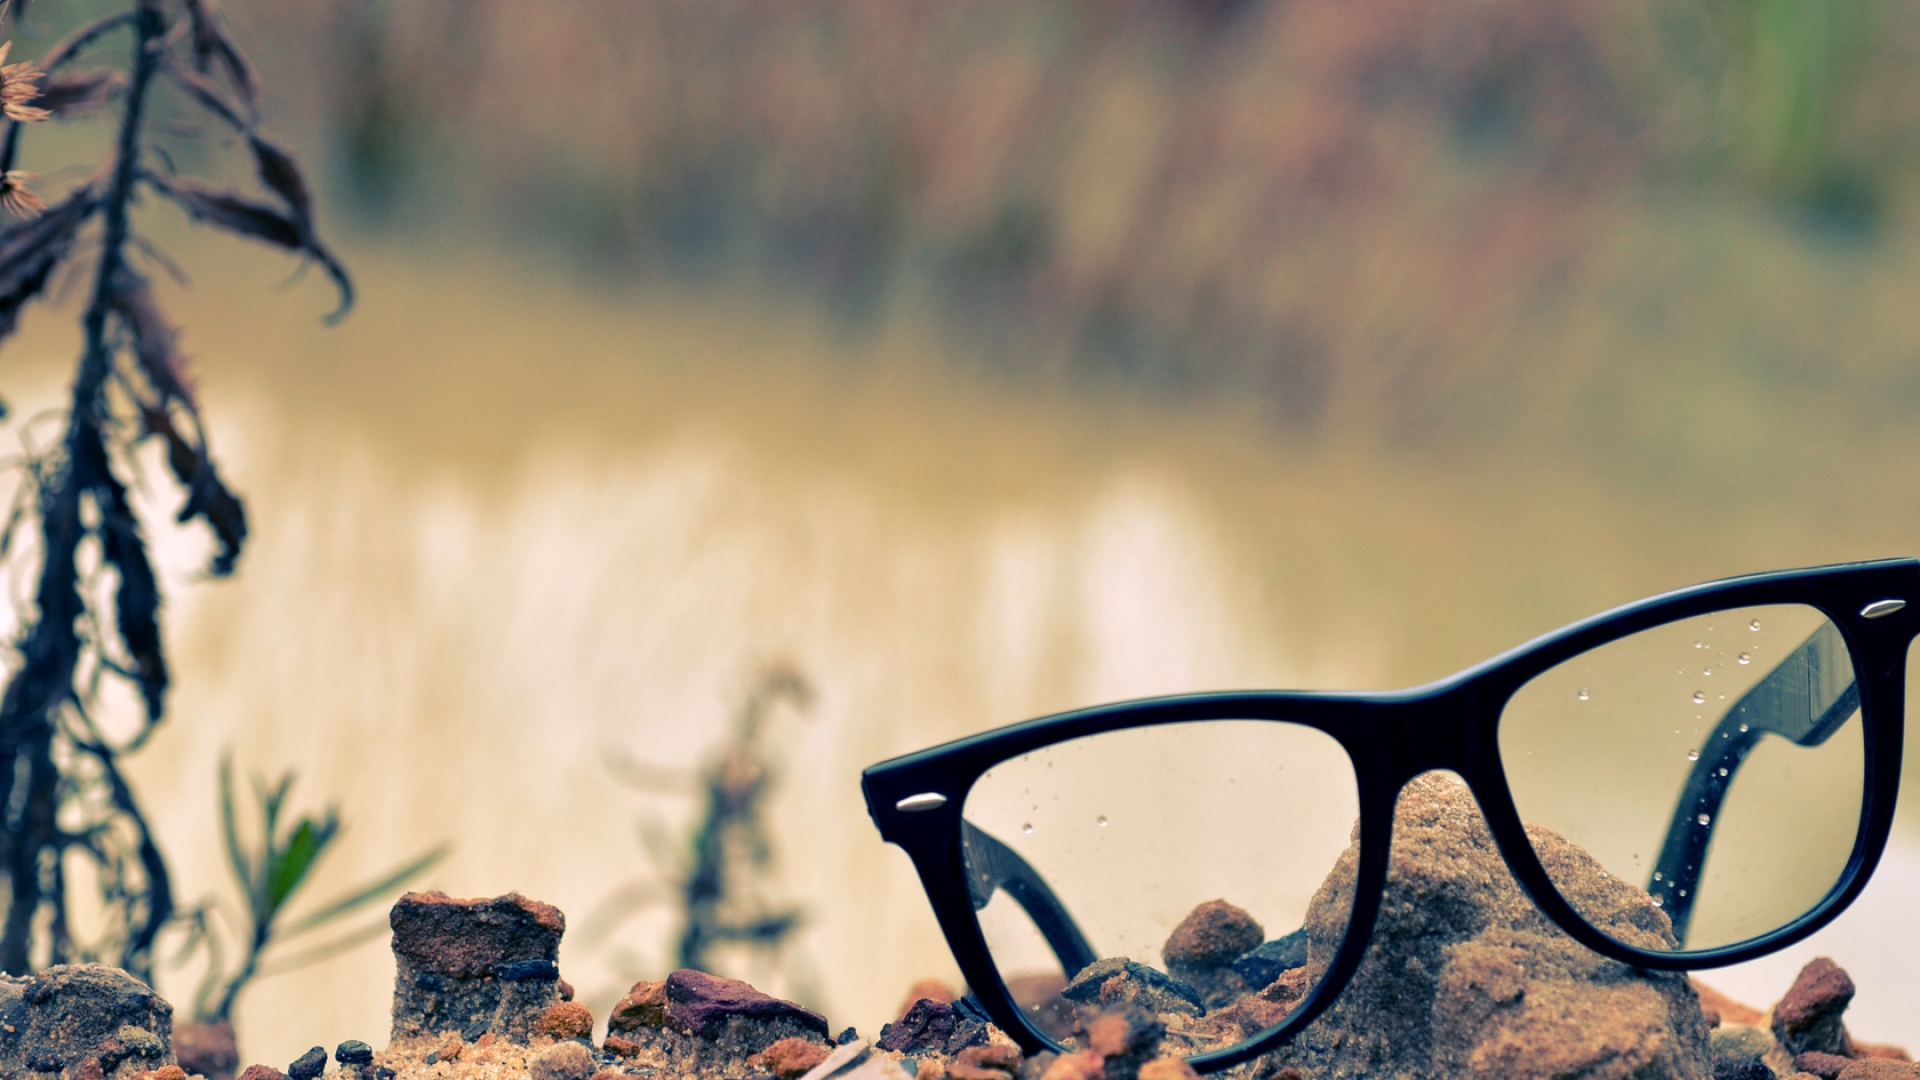 Download Wallpaper 1920x1080 glasses, lenses, rocks, grass ...